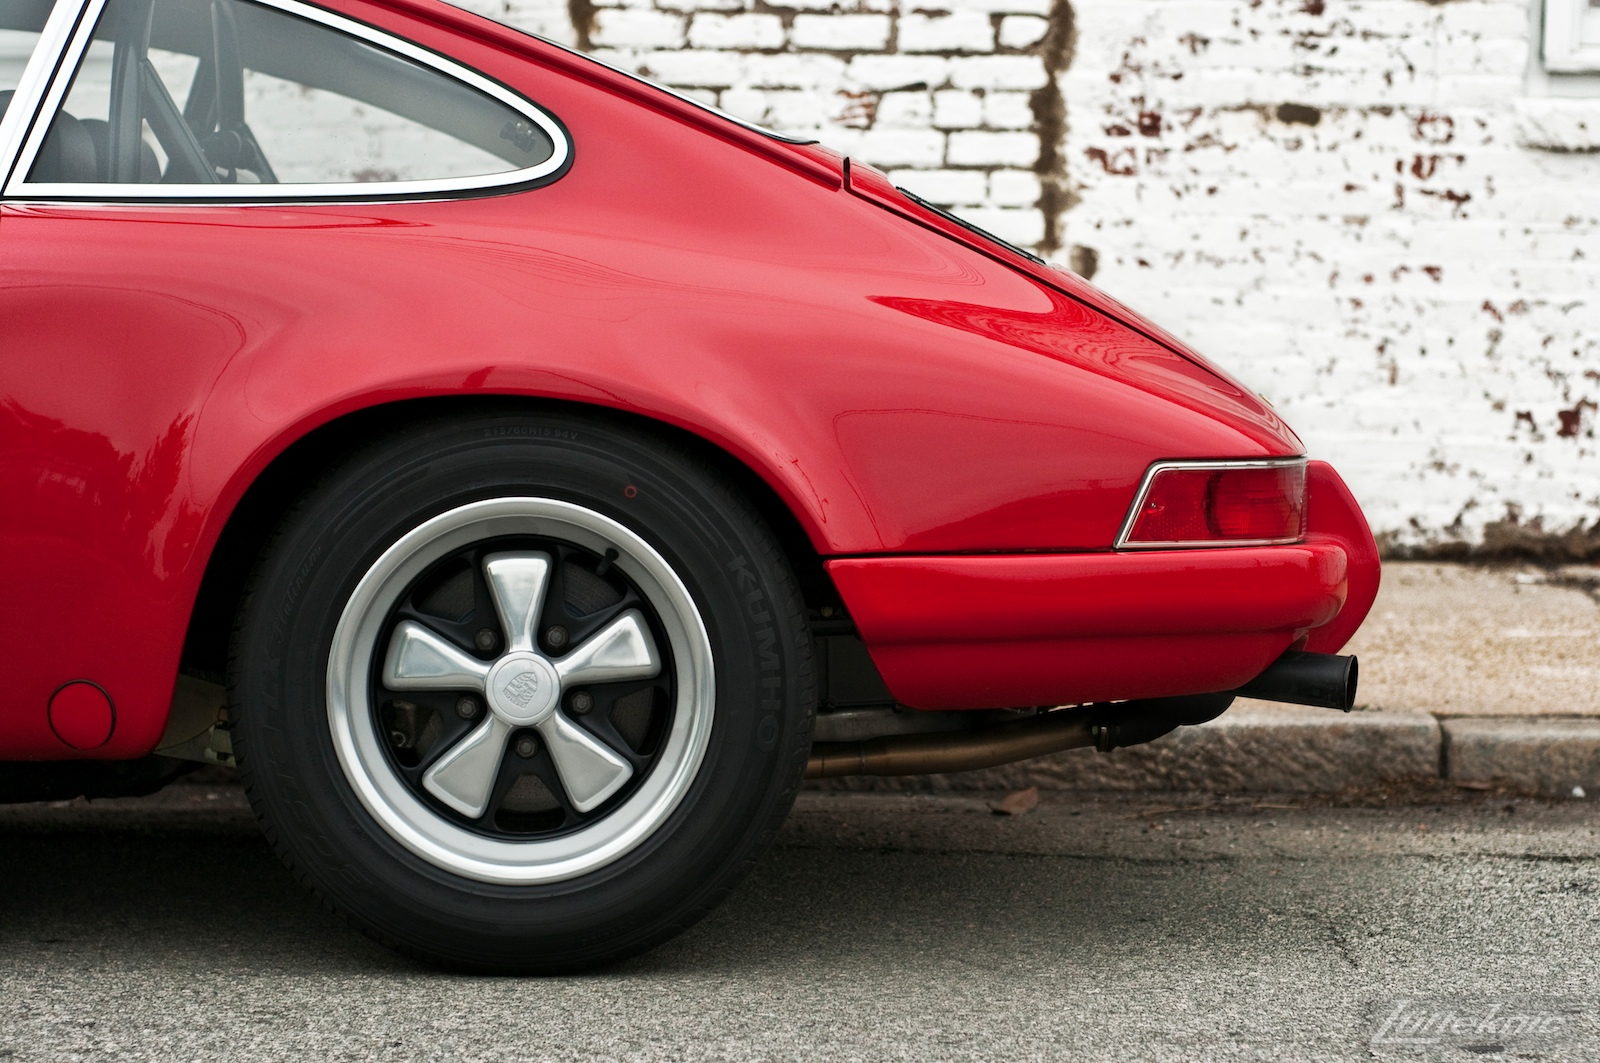 The rear wheel and fender on a red 911E